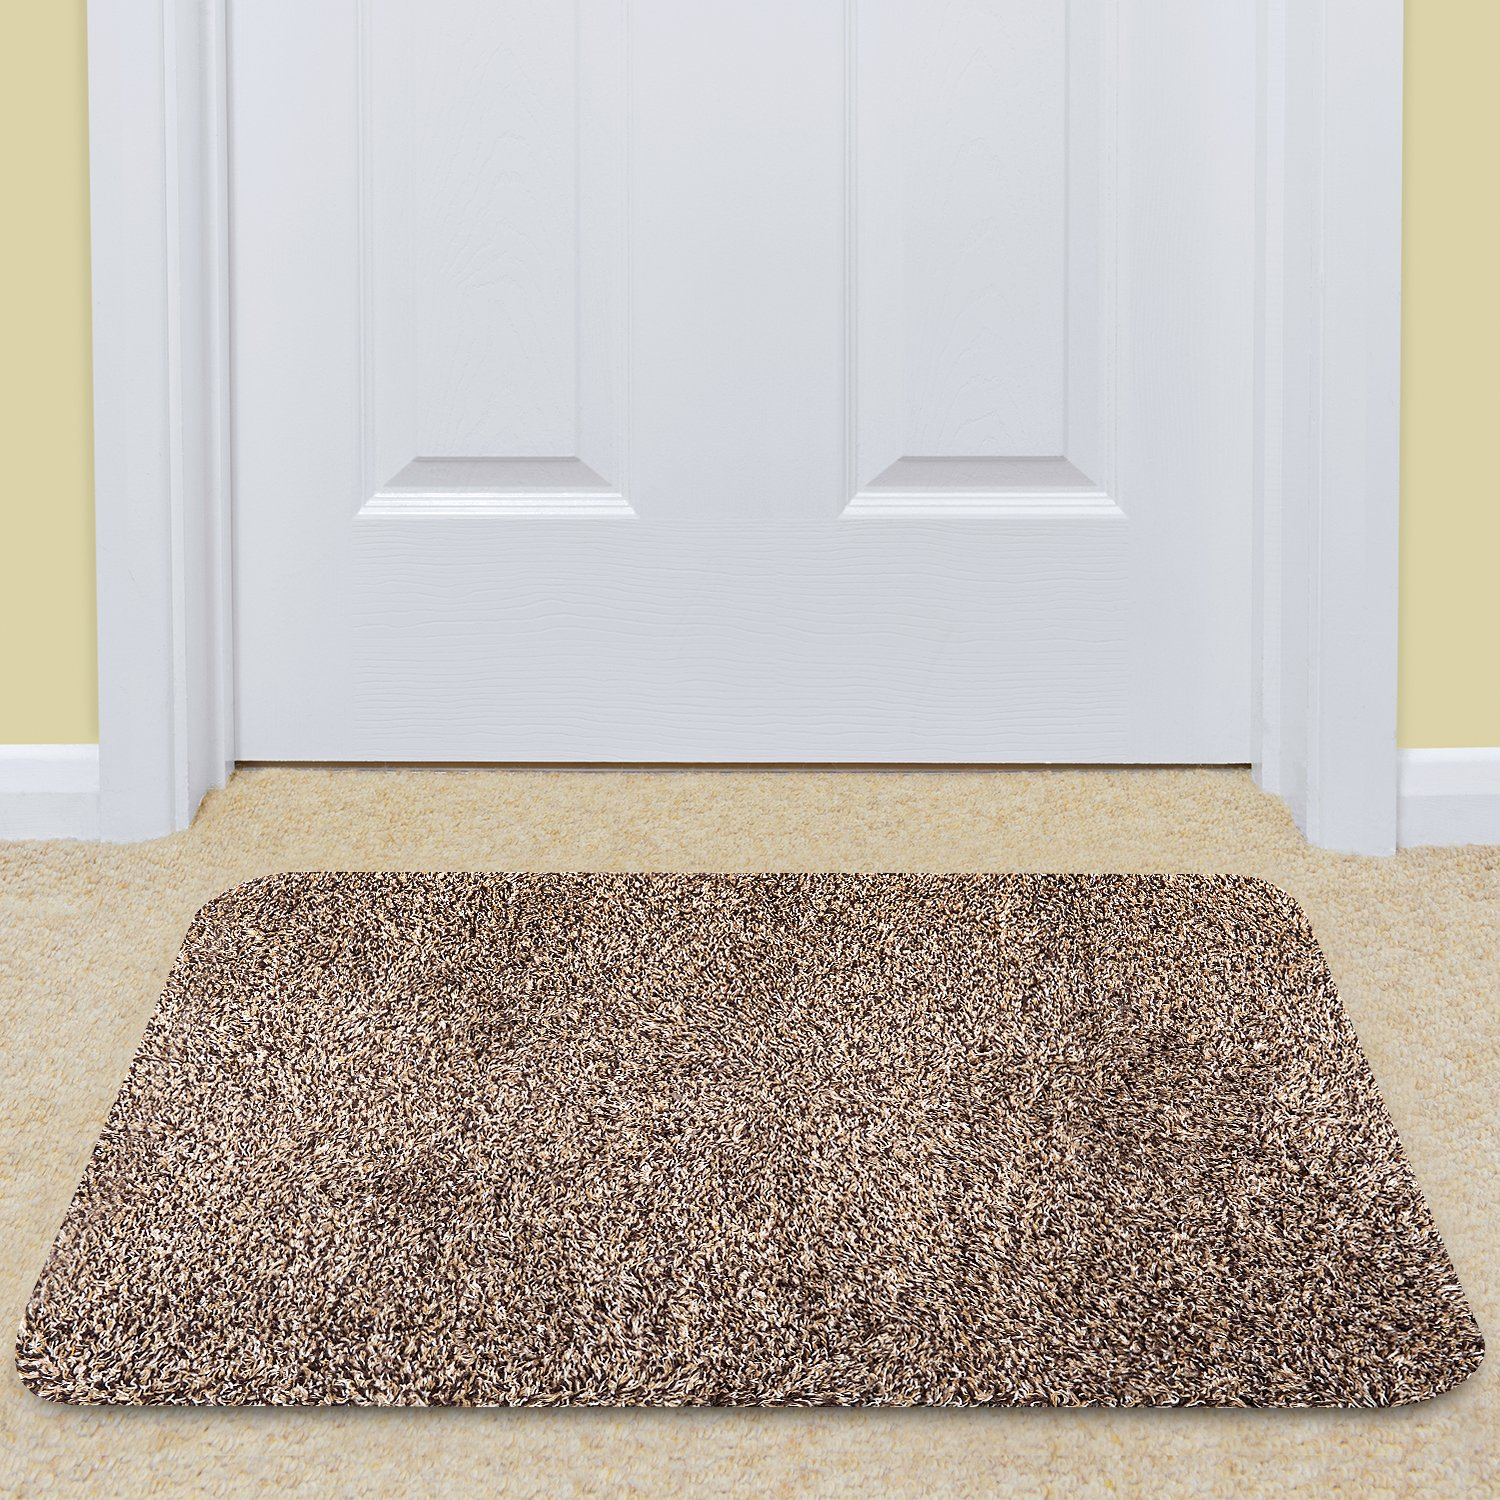 Large Indoor Doormat Super Absorbs Mud Mat 36''x 24'' Latex Backing Non Slip Door Mat for Front Door Inside Floor Dirt Trapper Mats Cotton Entrance Rug Shoes Scraper Machine Washable Carpet Brownish Tan